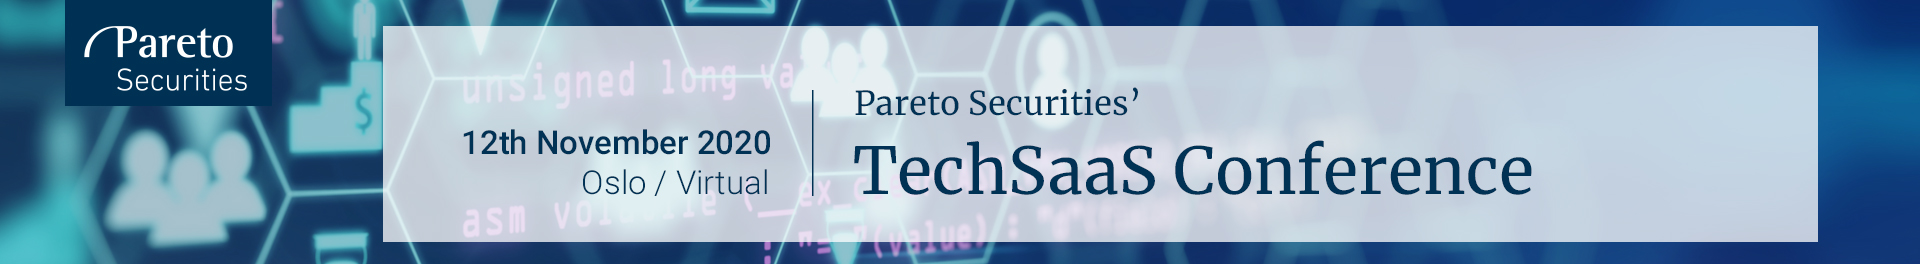 Header image for Pareto Securities' TechSaaS Conference